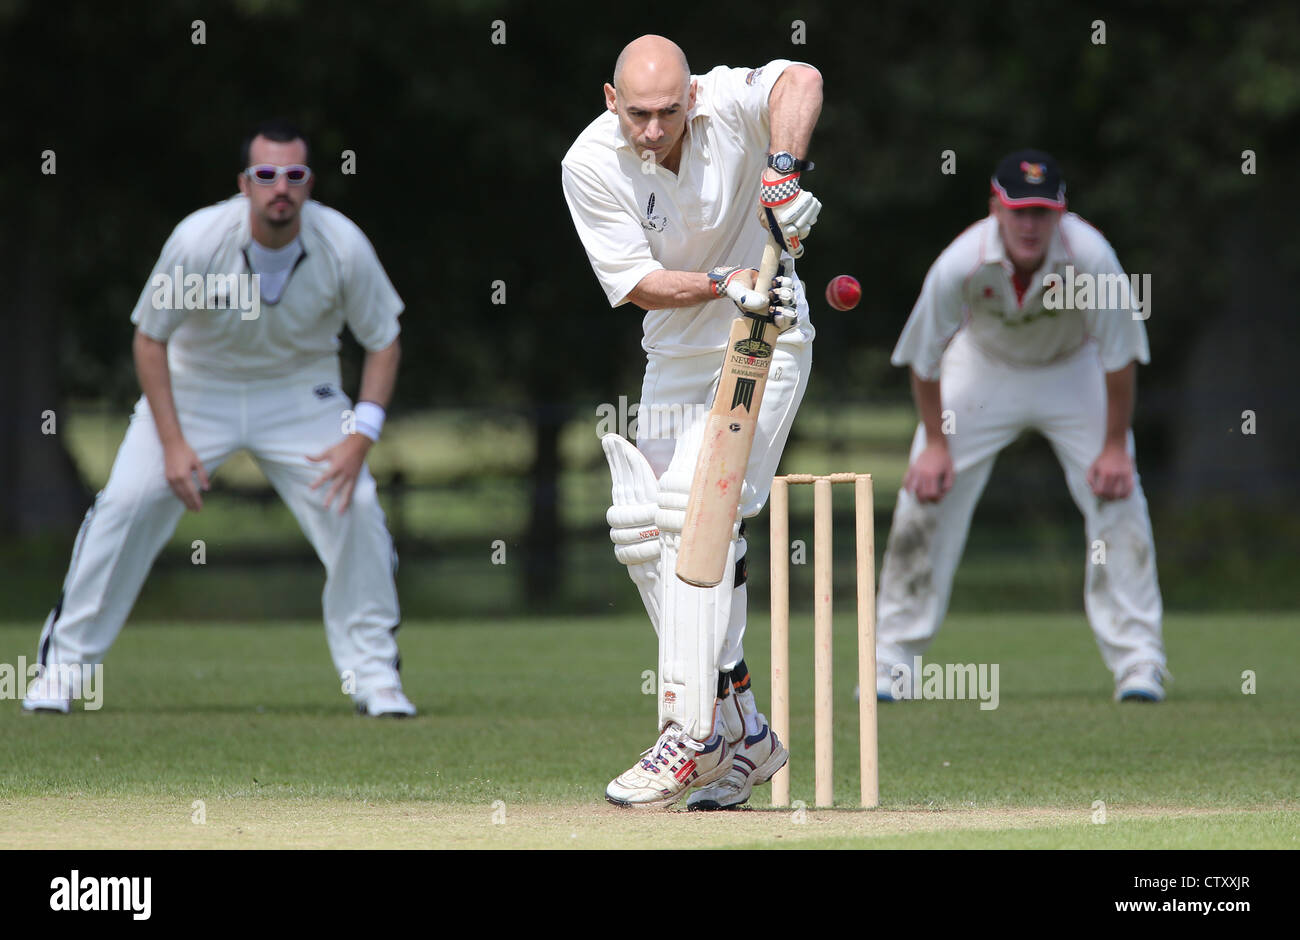 A Batsman in action during a village cricket match in the English Countyside. Picture by James Boardman. - Stock Image